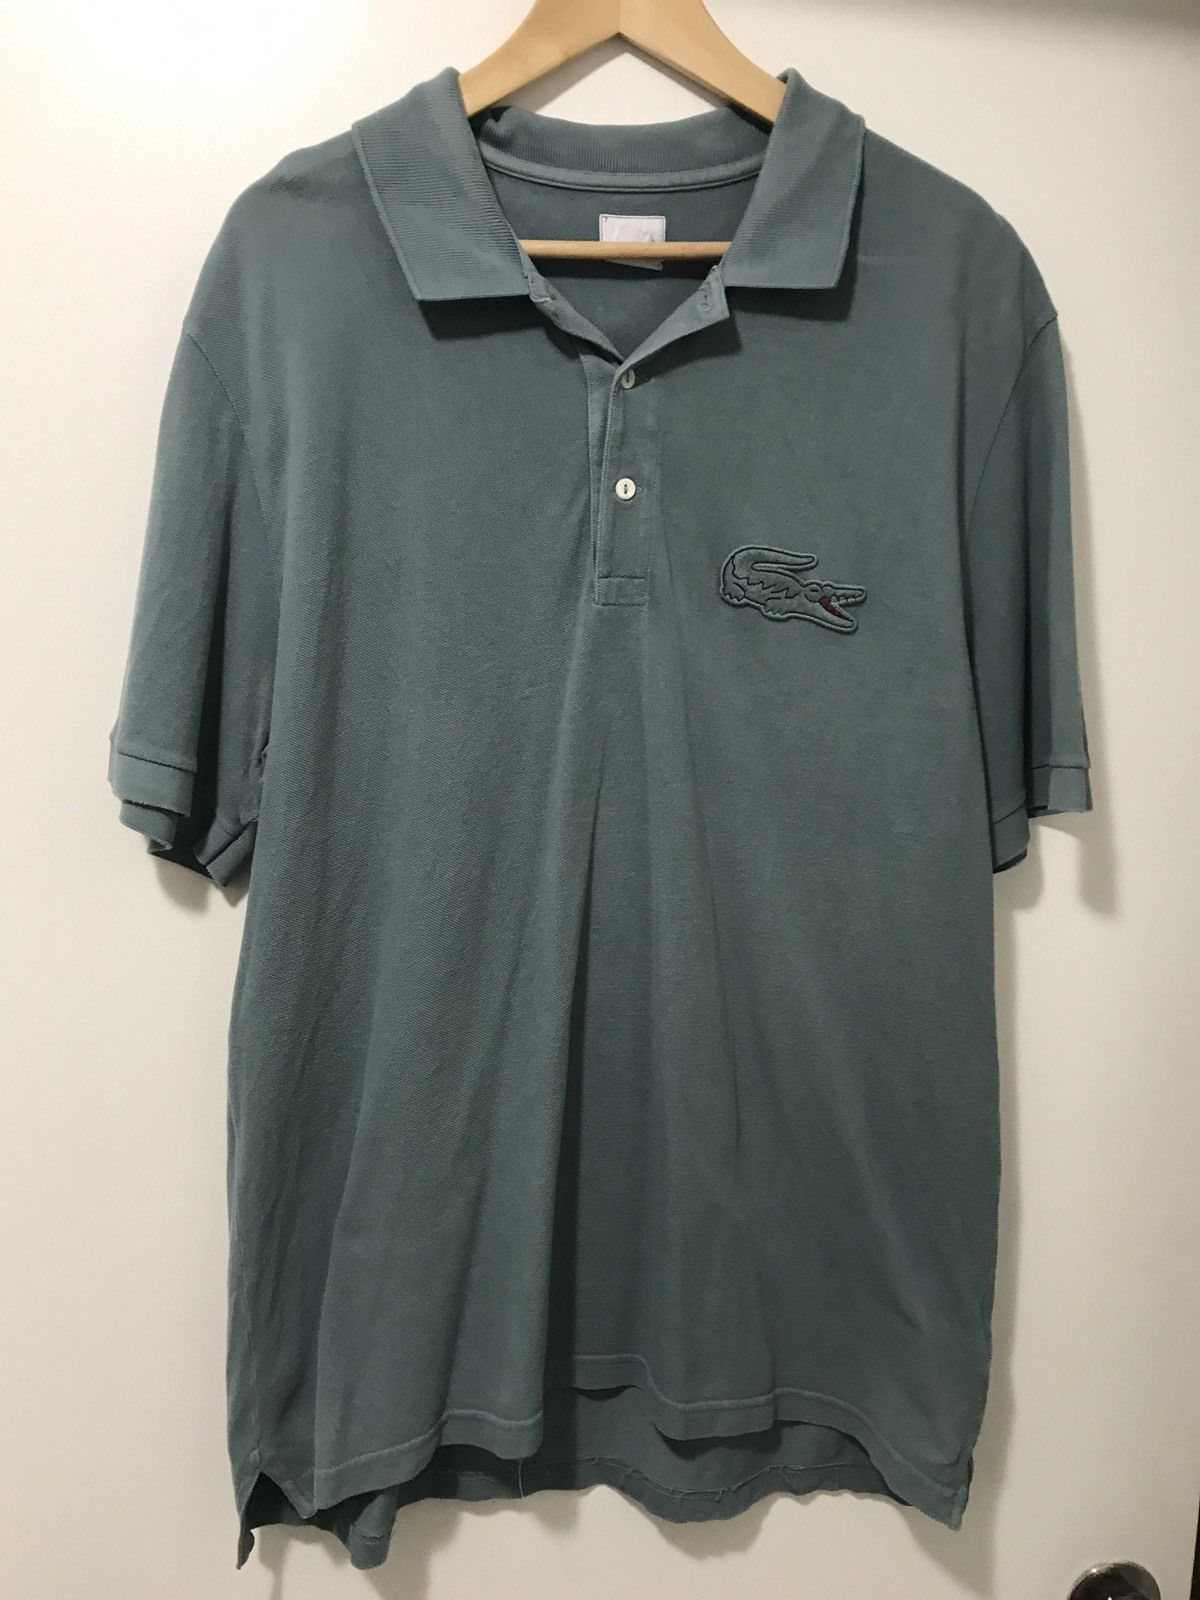 Lacoste rare size big gator logo short sleeve polo shirt mens 11l lacoste rare size big gator logo short sleeve polo shirt mens 11l 4xlt 4xl f30 common shopping pinterest lacoste polo shirts and polos sciox Images